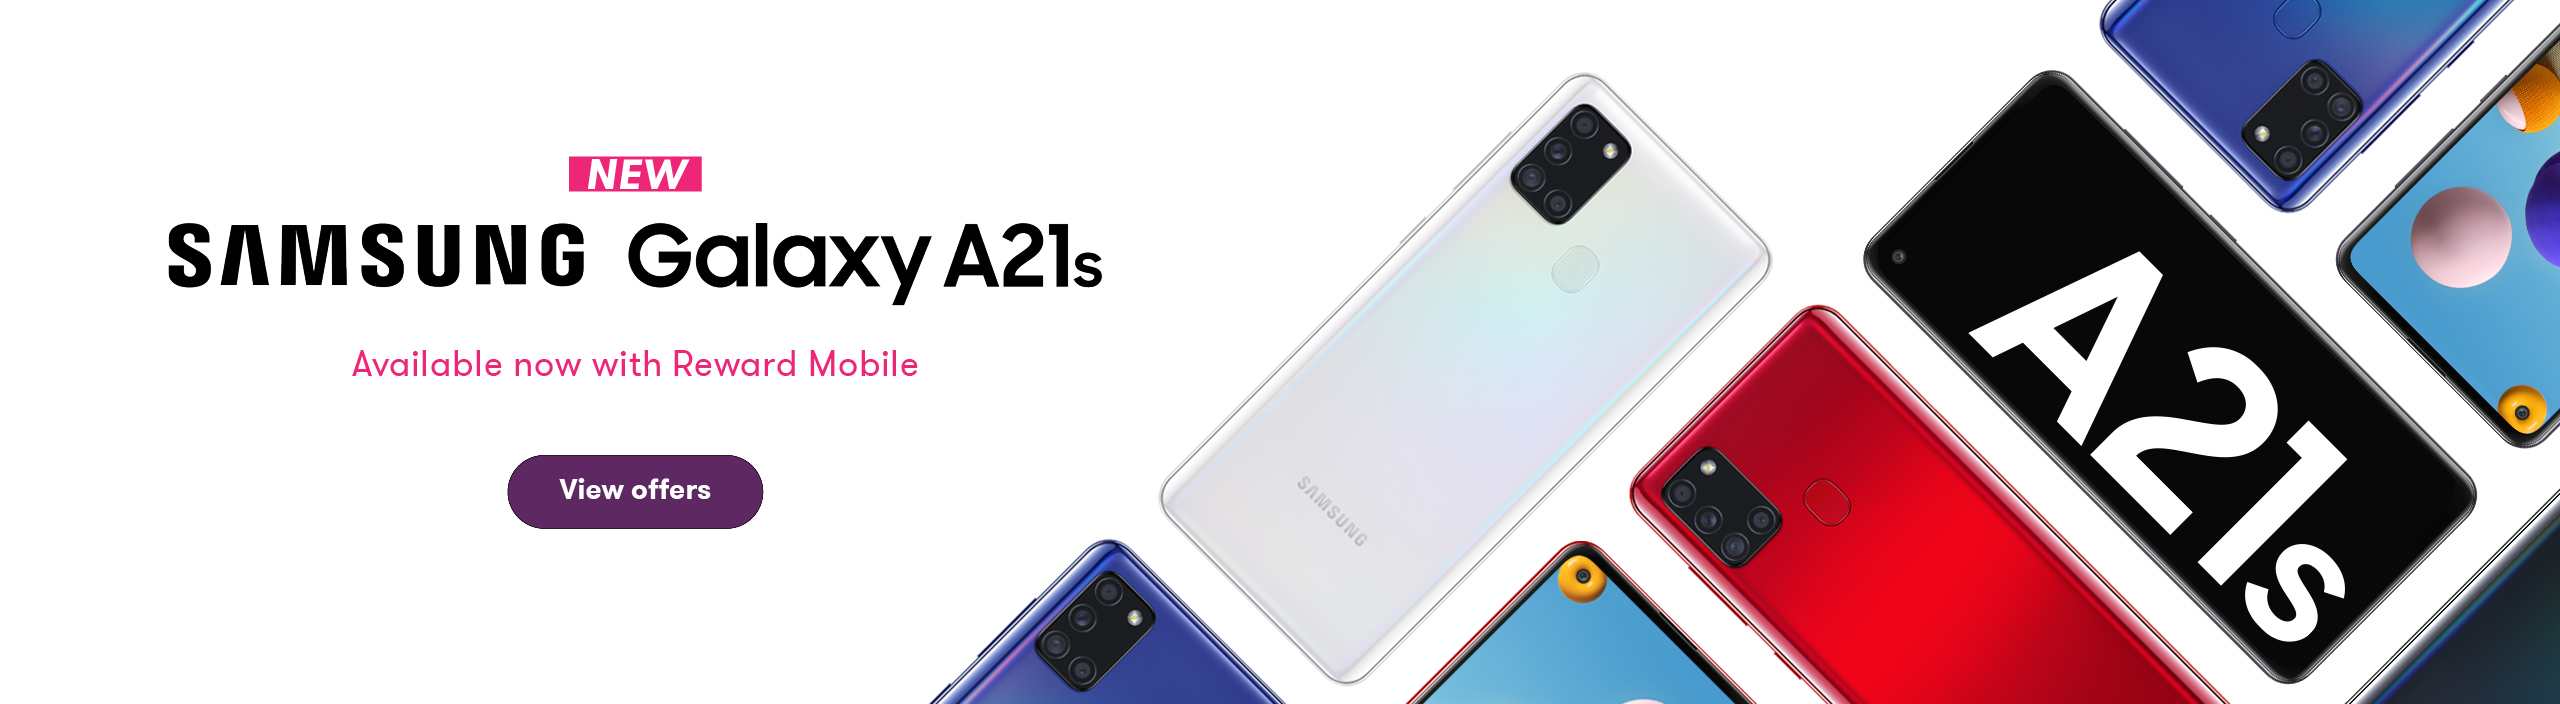 Samsung, A21s, View Offers